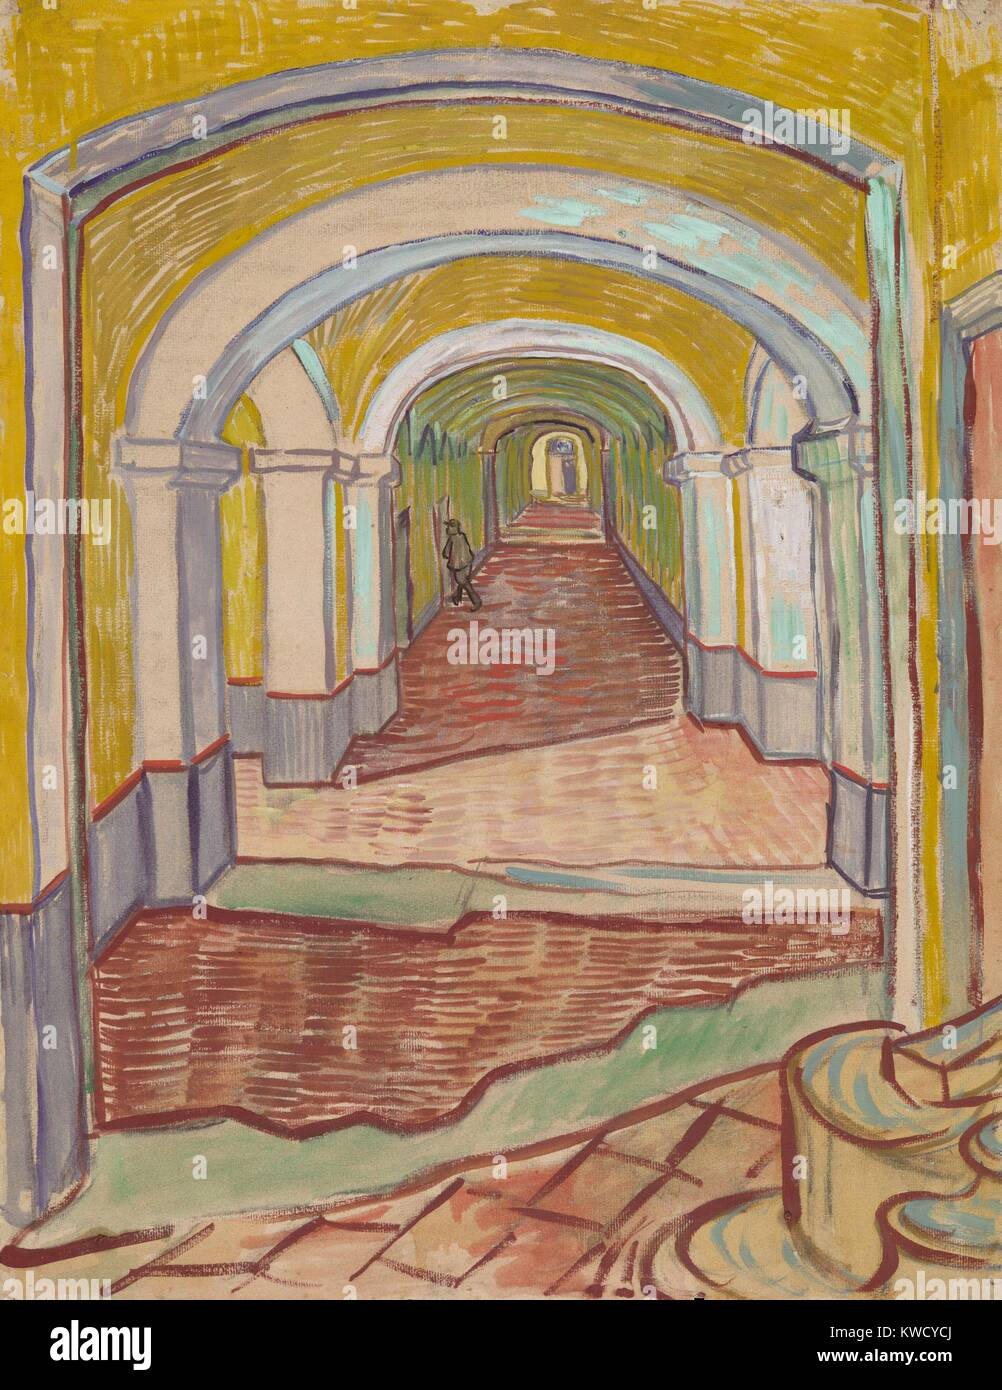 Corridor in the Asylum, by Vincent Van Gogh, 1889, Dutch Post-Impressionist painting. This mixed media work of oil - Stock Image